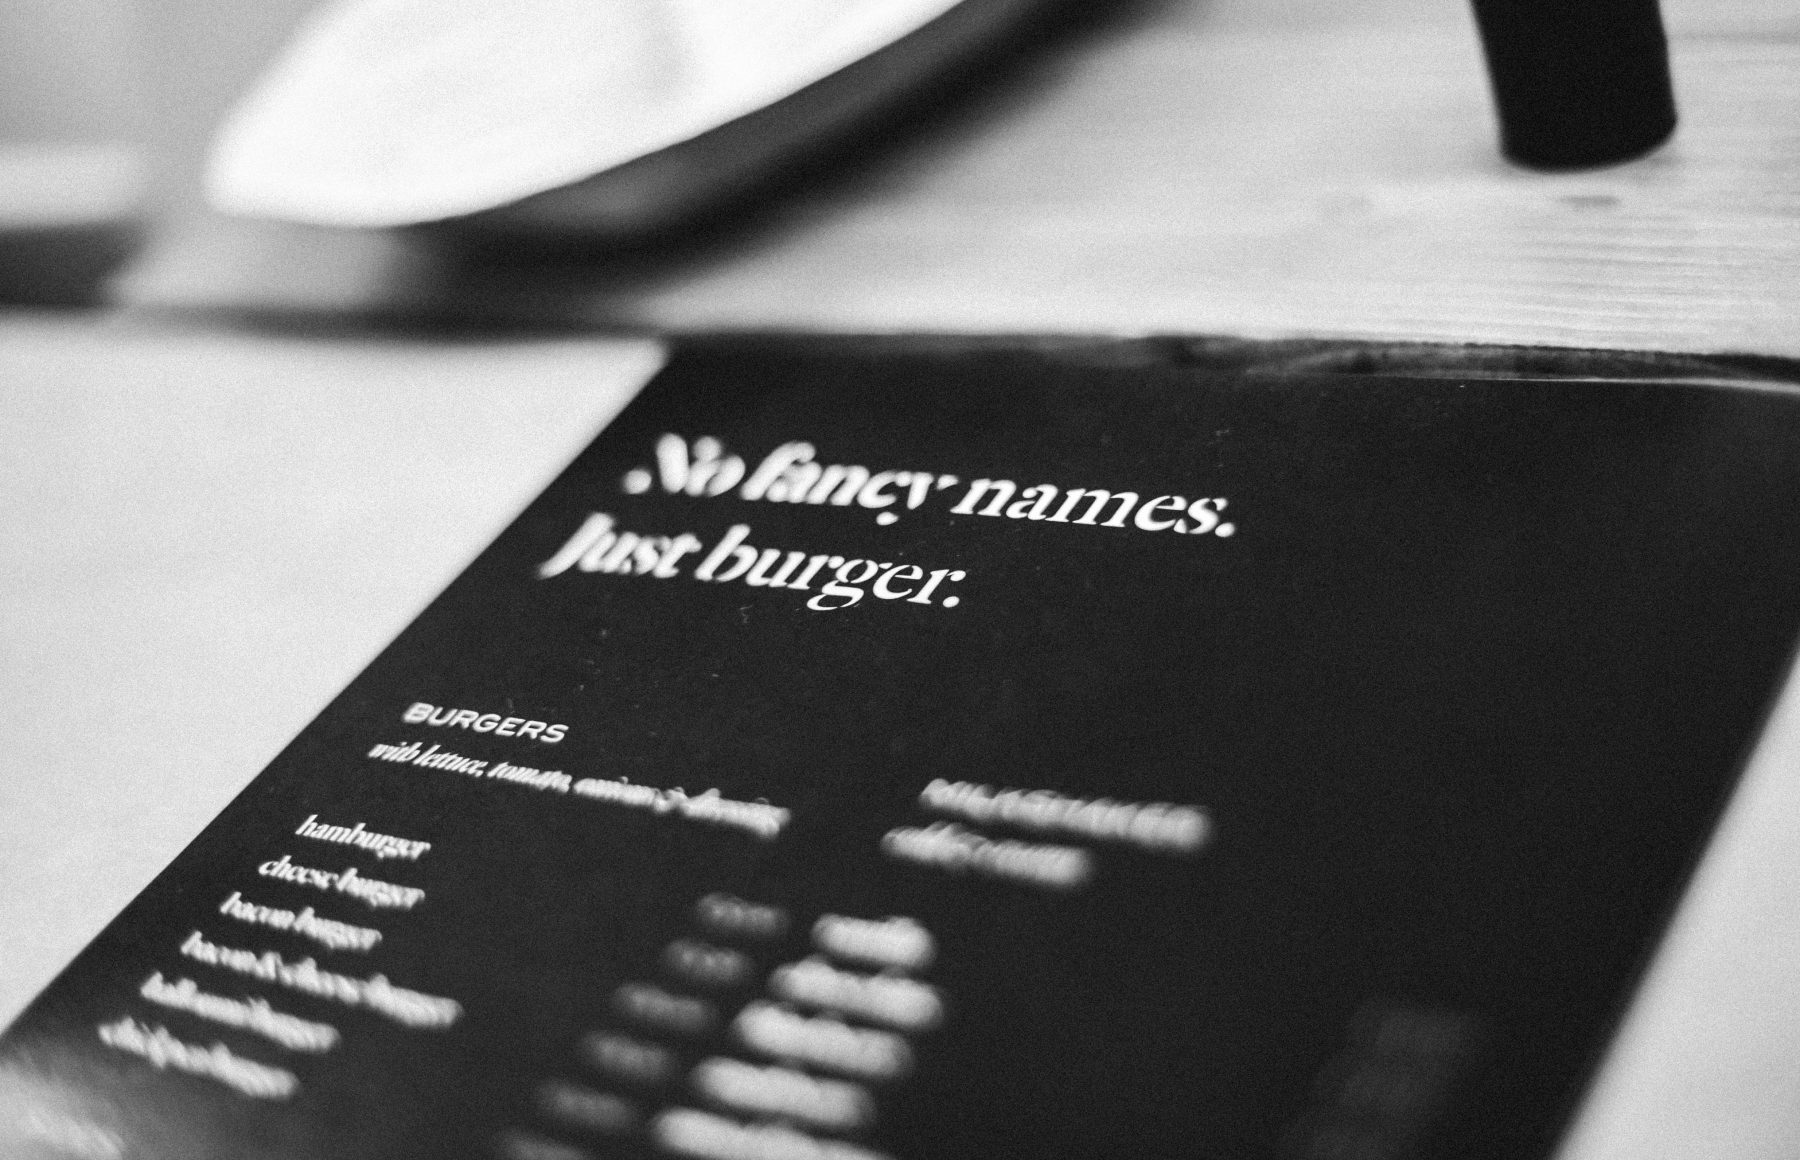 Just Burger fast casual restaurant branding and design by Hangar in Malta